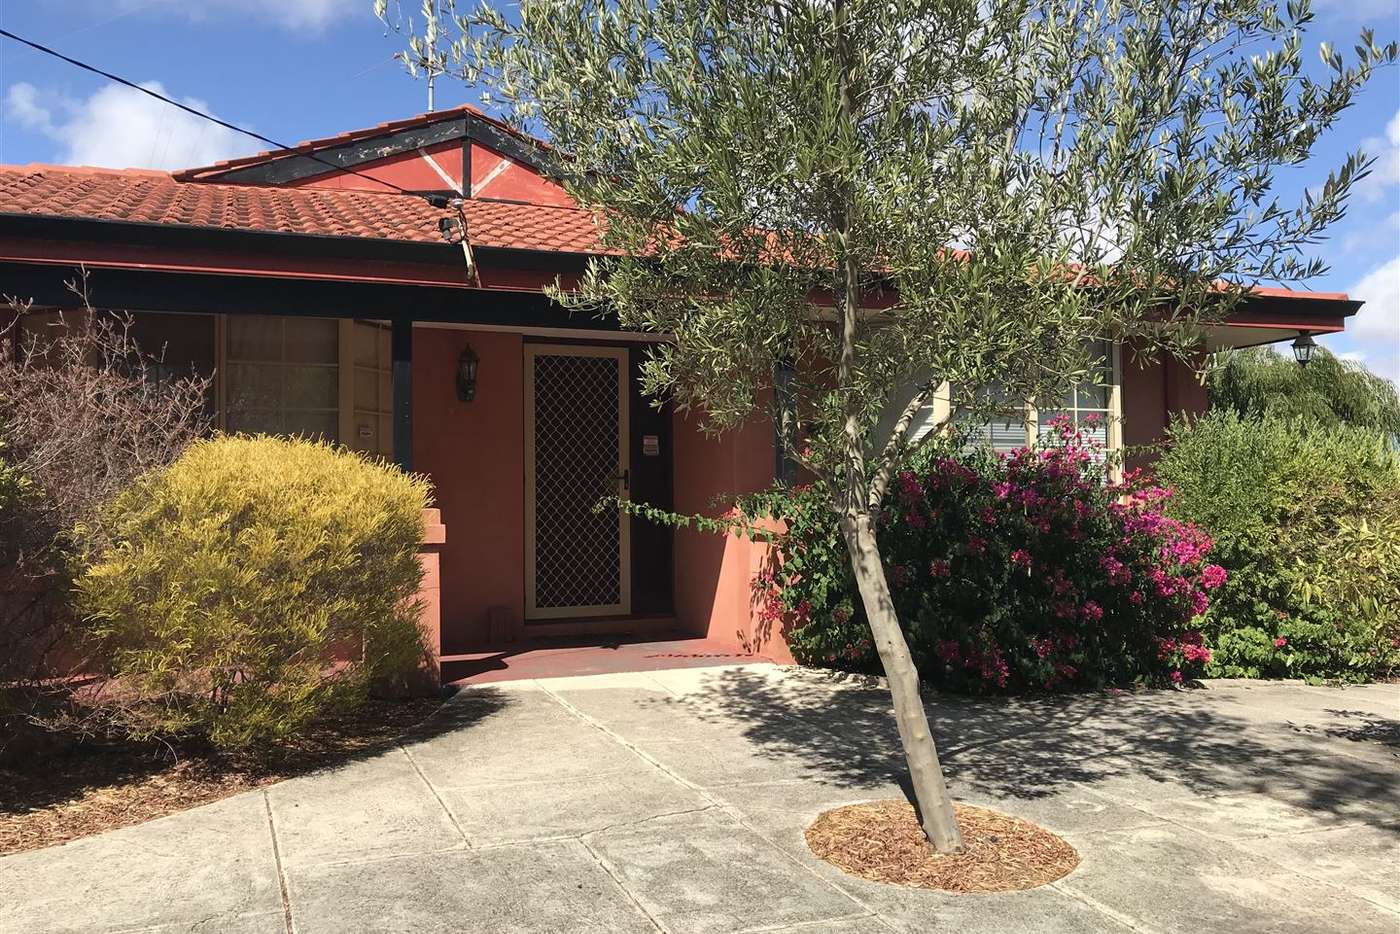 Main view of Homely house listing, 10 Brooking Place, Australind WA 6233